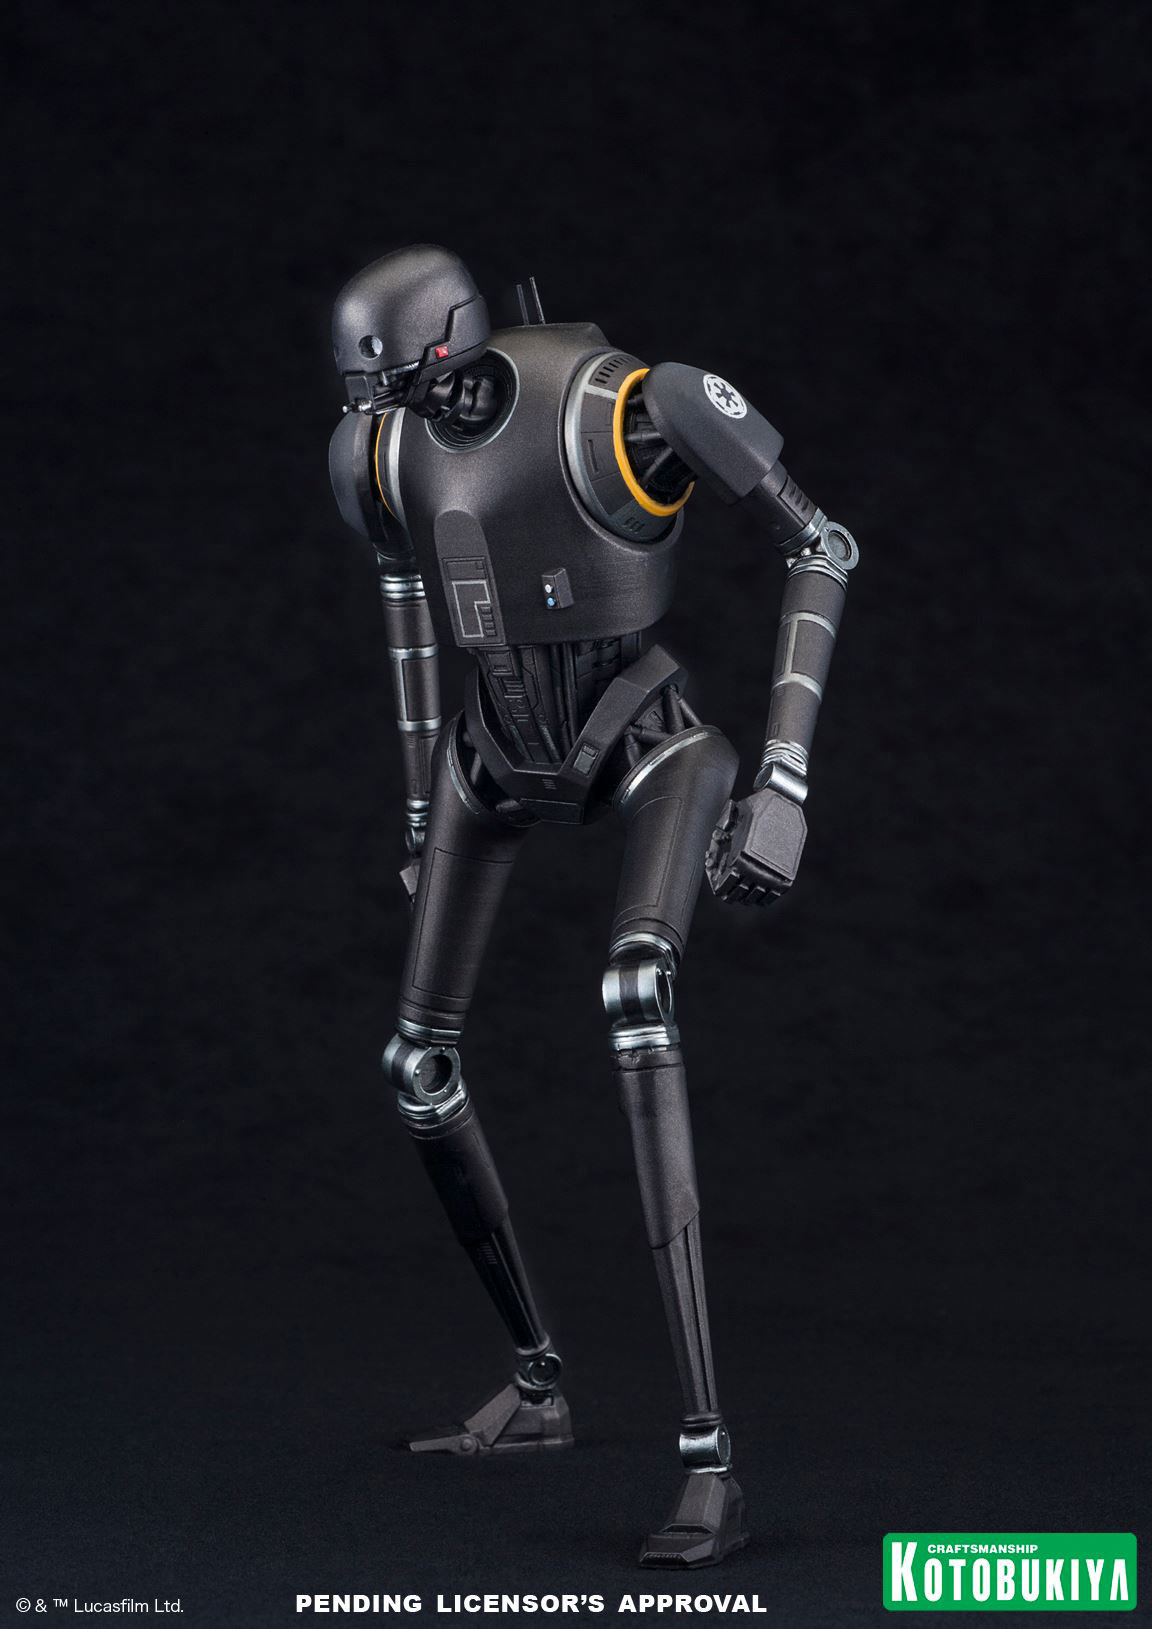 kotobukiya-star-wars-rogue-one-k-2so-artfx-statue-5